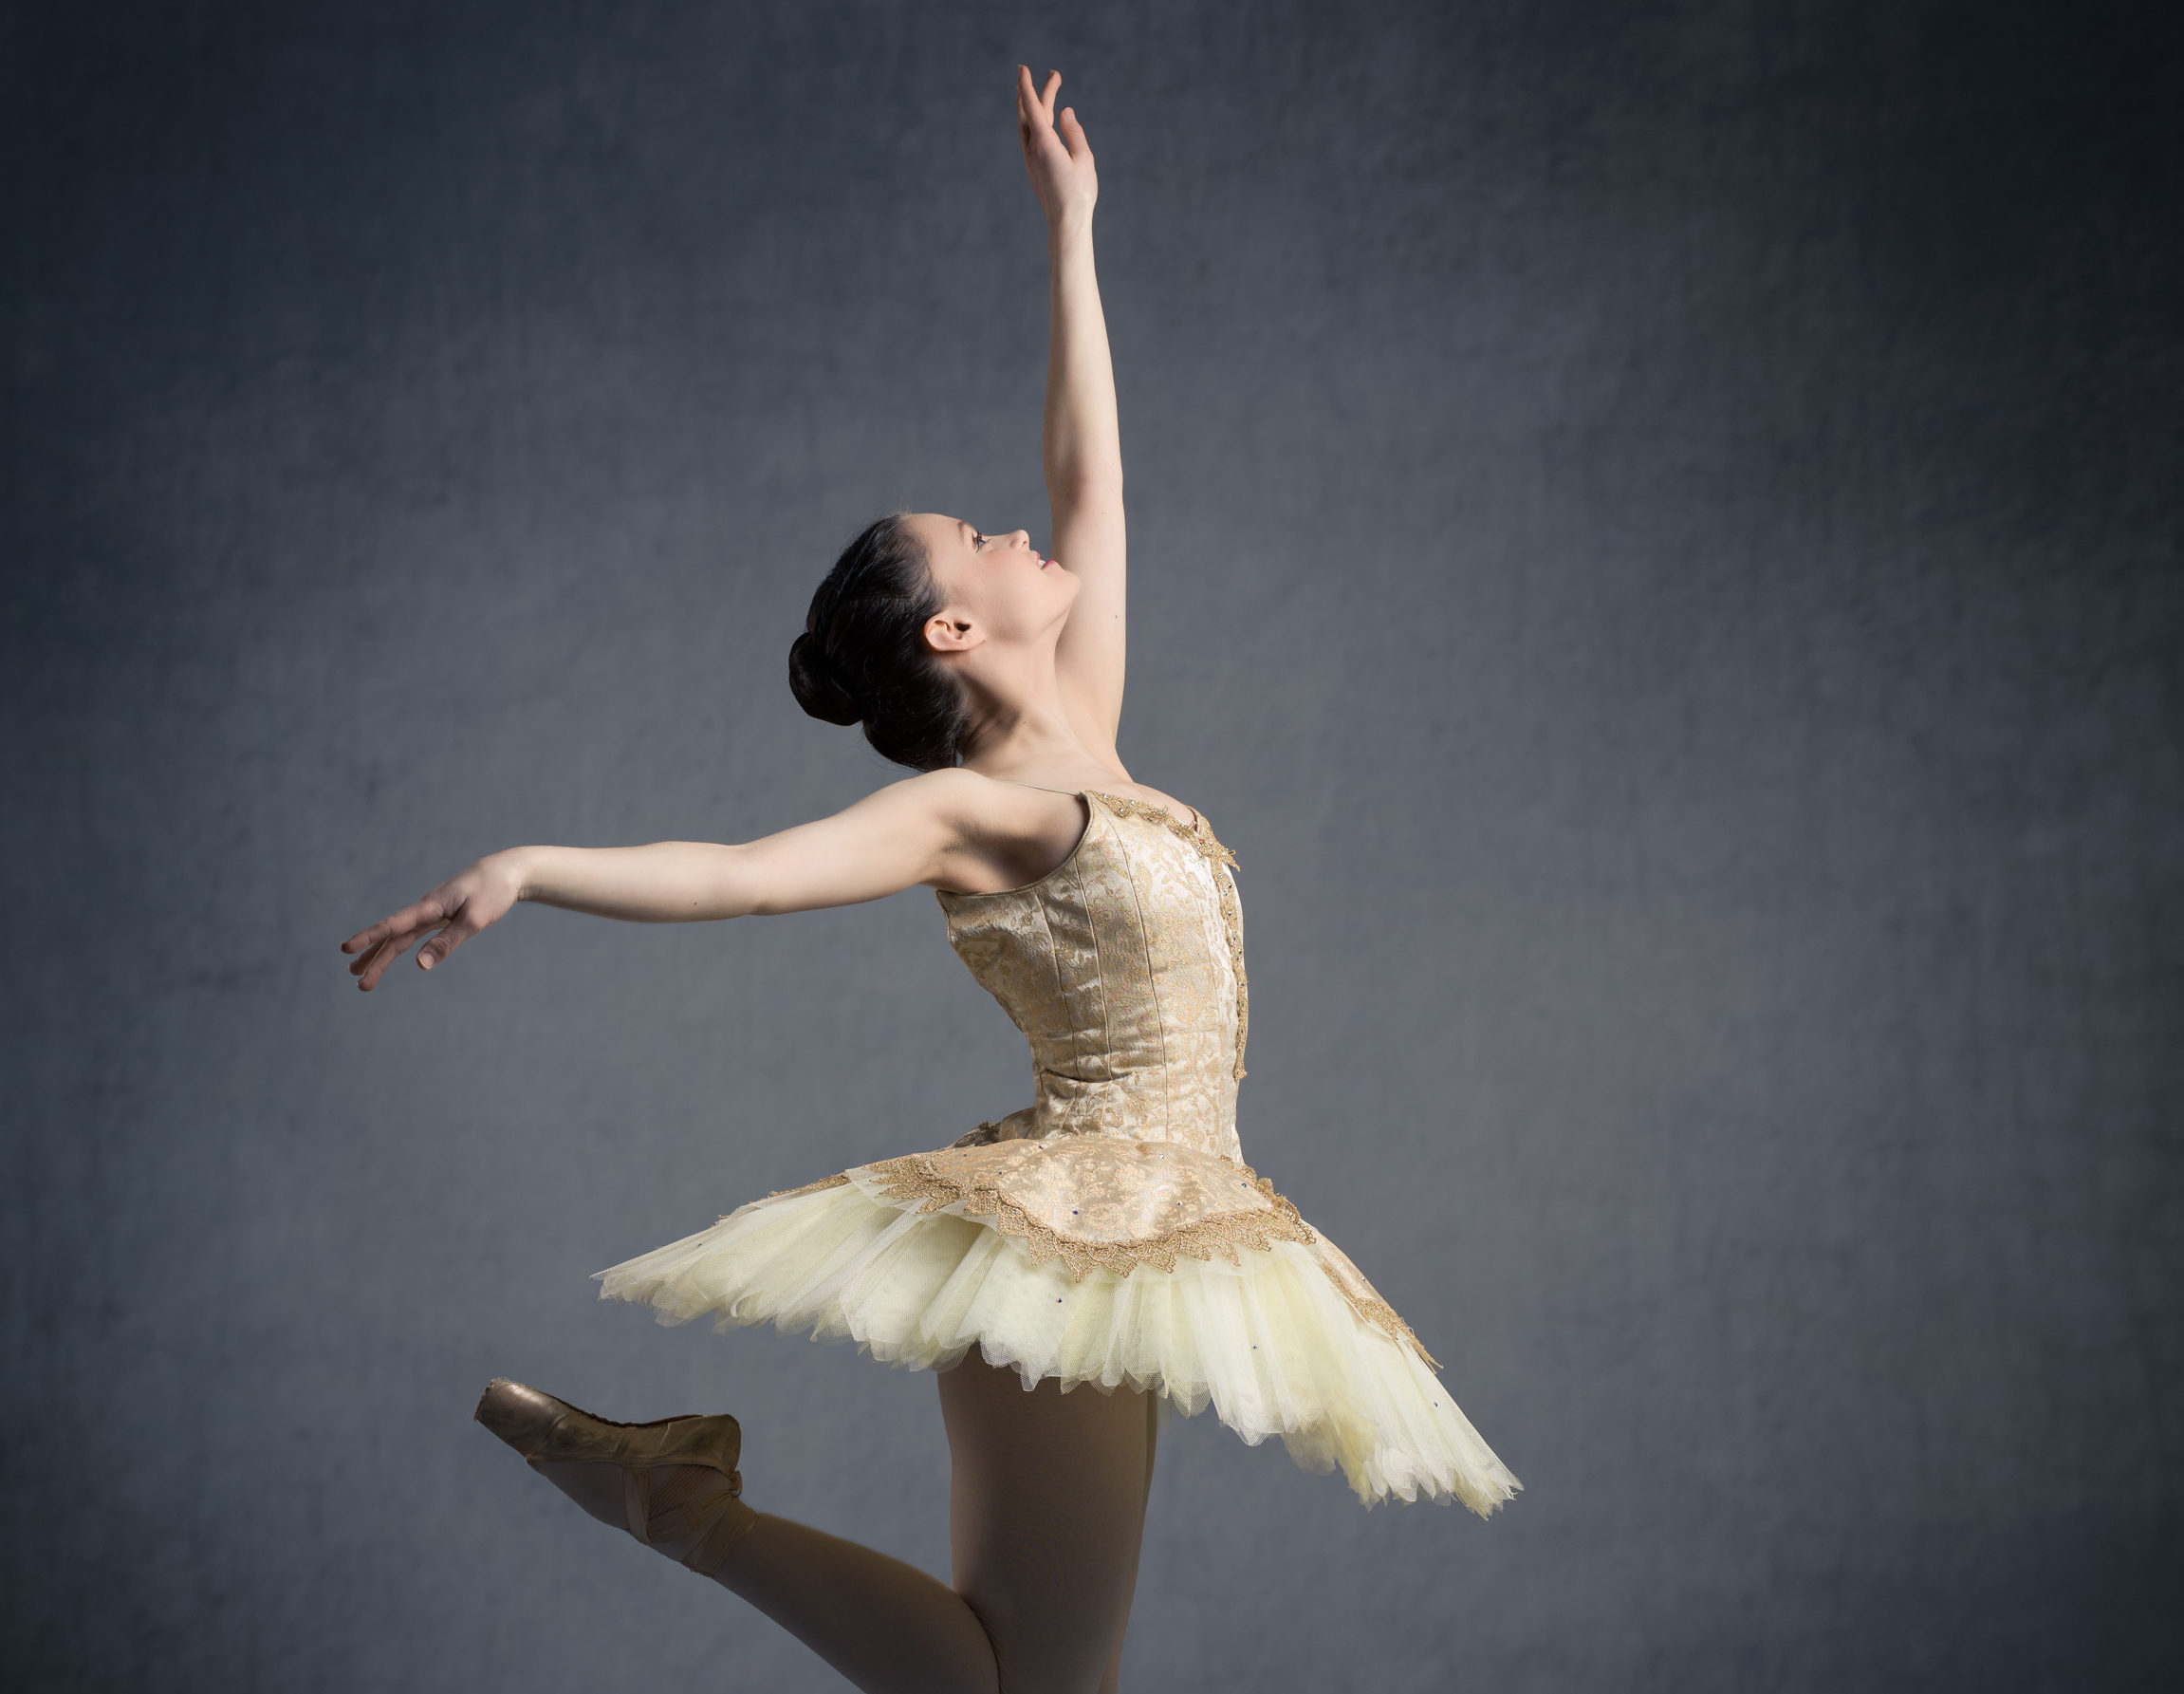 Errin performed in The Nutcracker across Scotland to packed out audiences